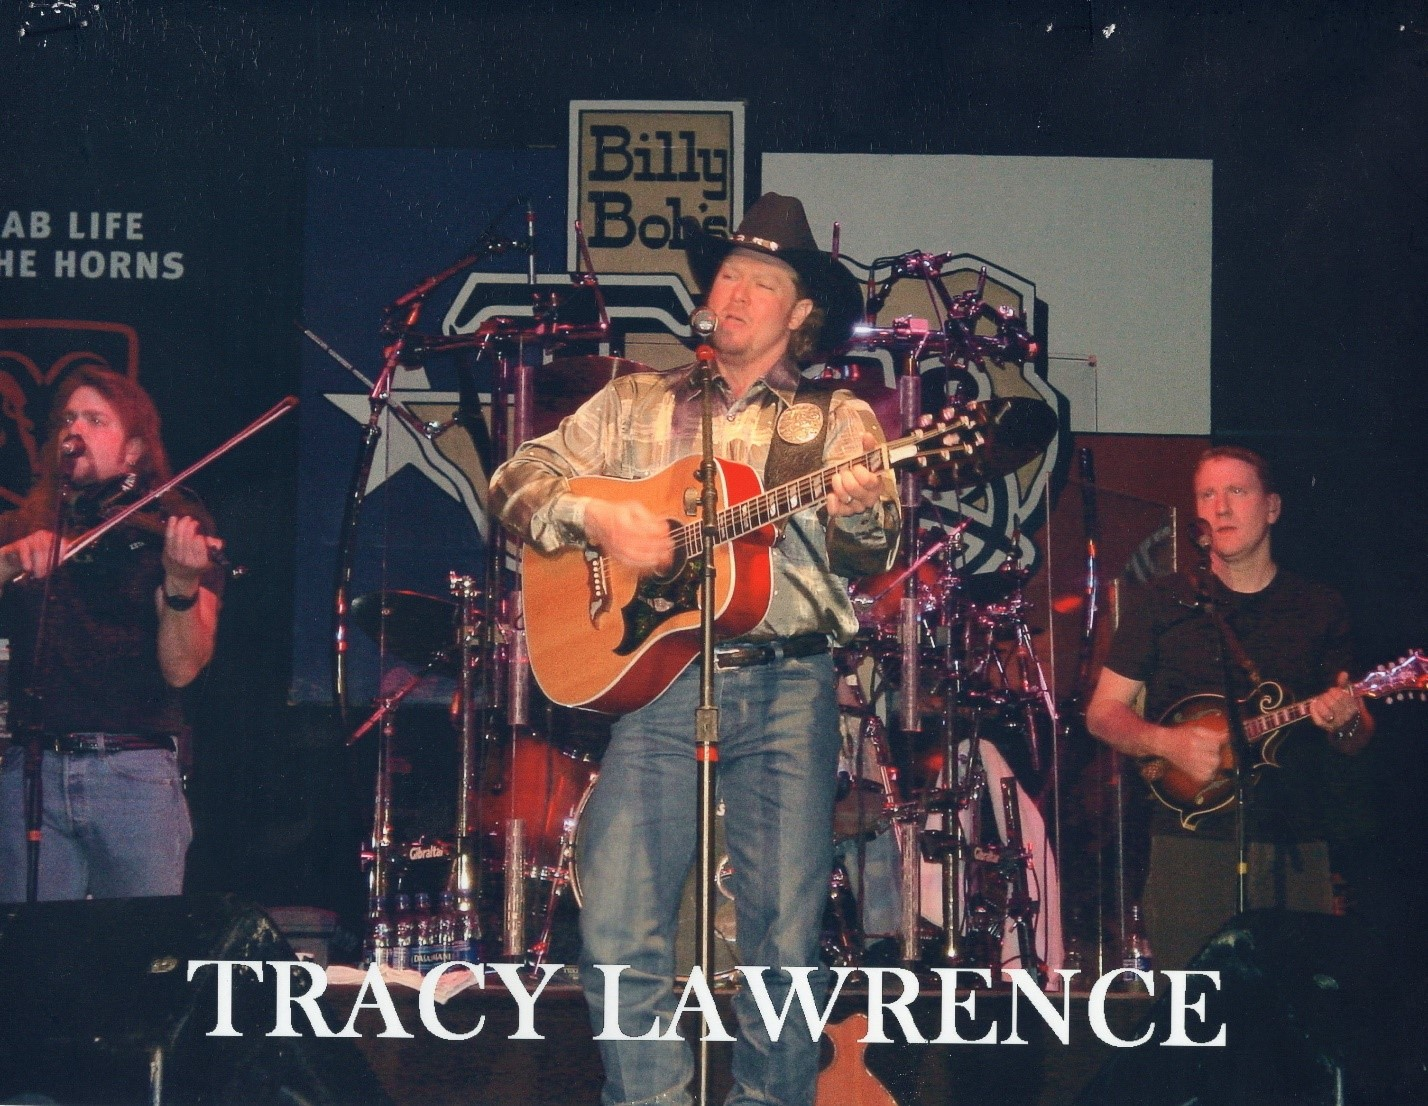 Tracy Lawrence - Jul 24